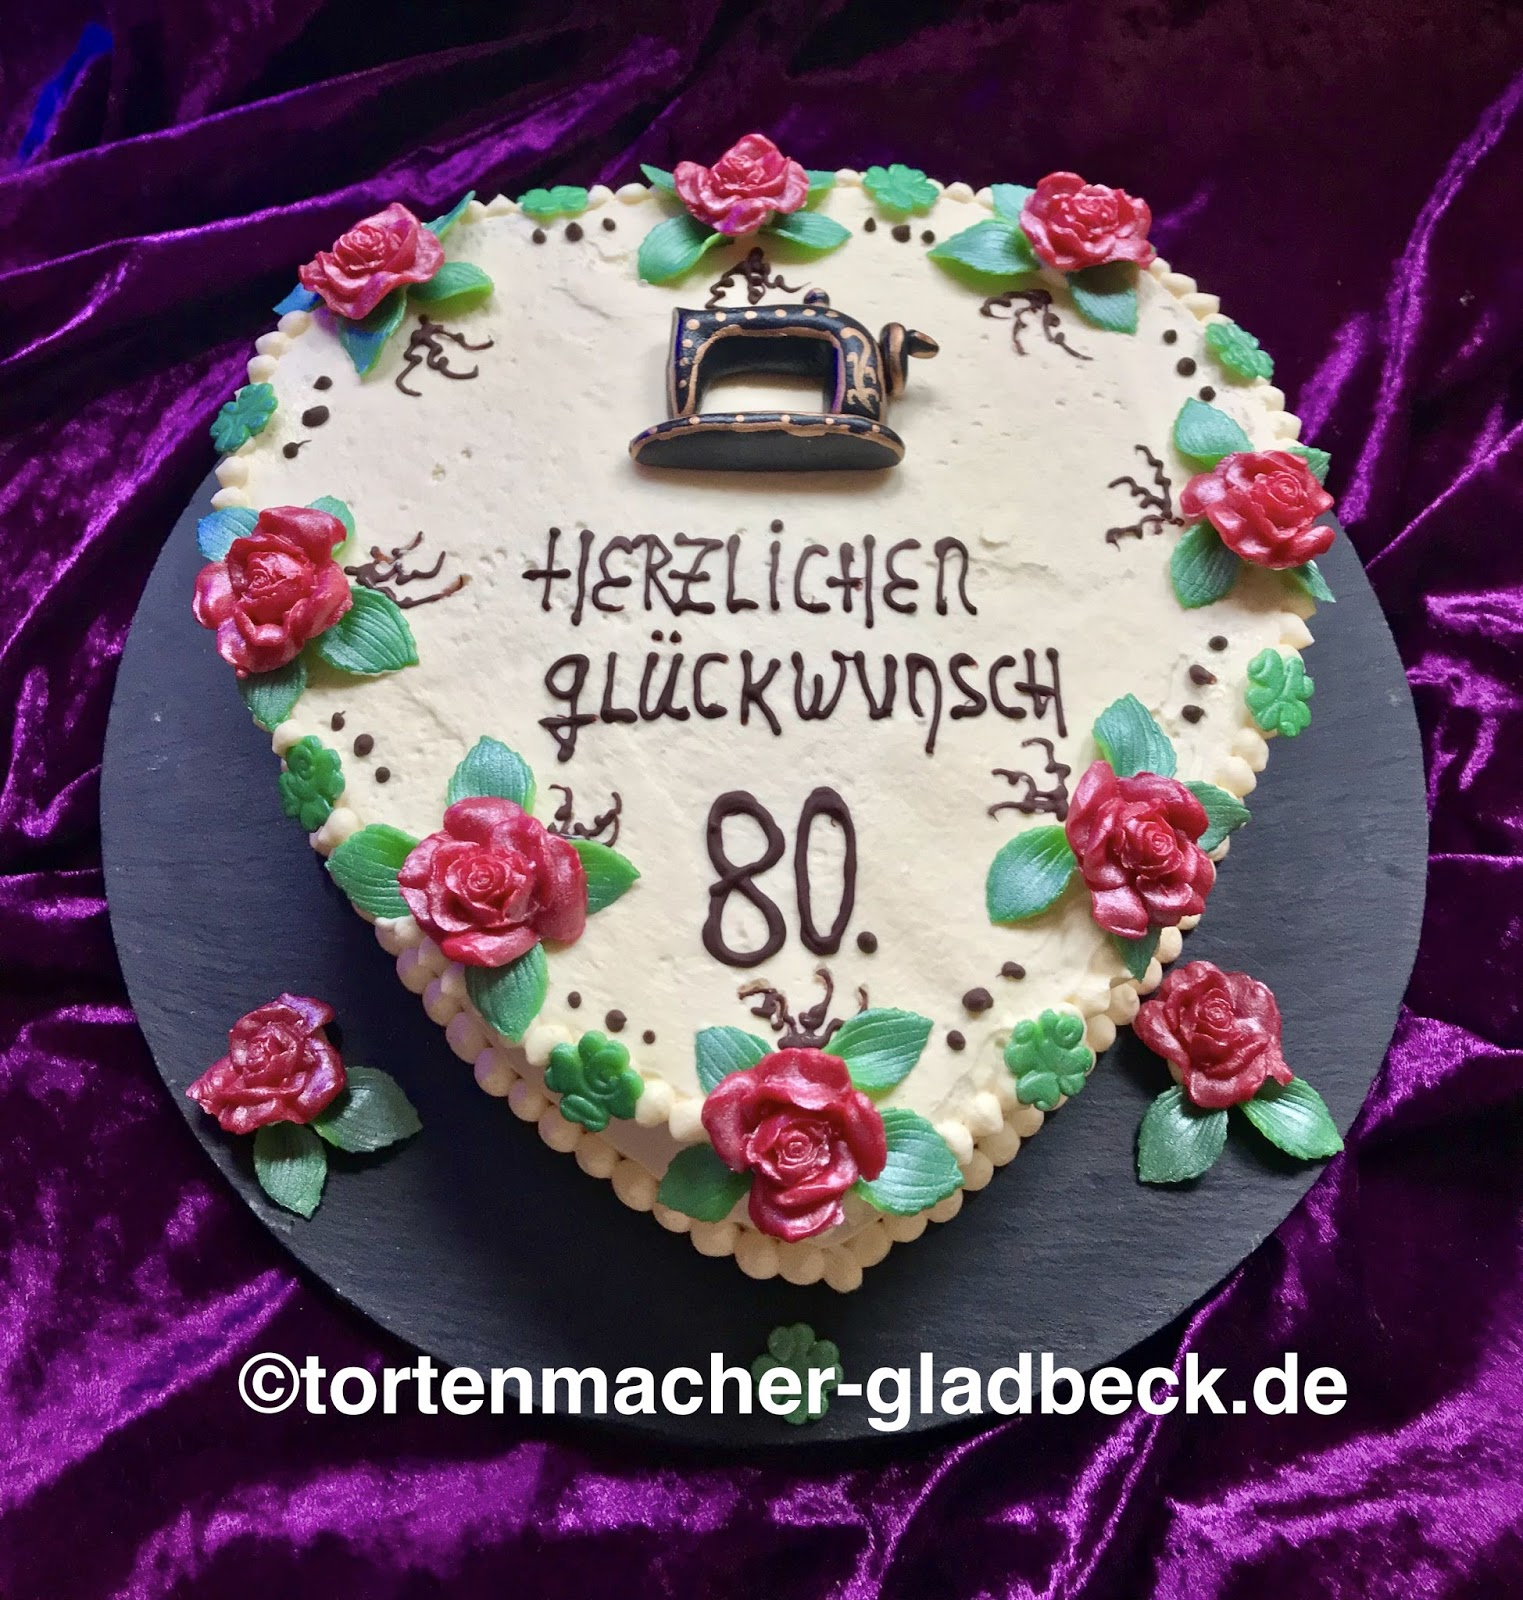 der tortenmacher gladbeck torte zum 80 geburtstag mit n hmaschine. Black Bedroom Furniture Sets. Home Design Ideas